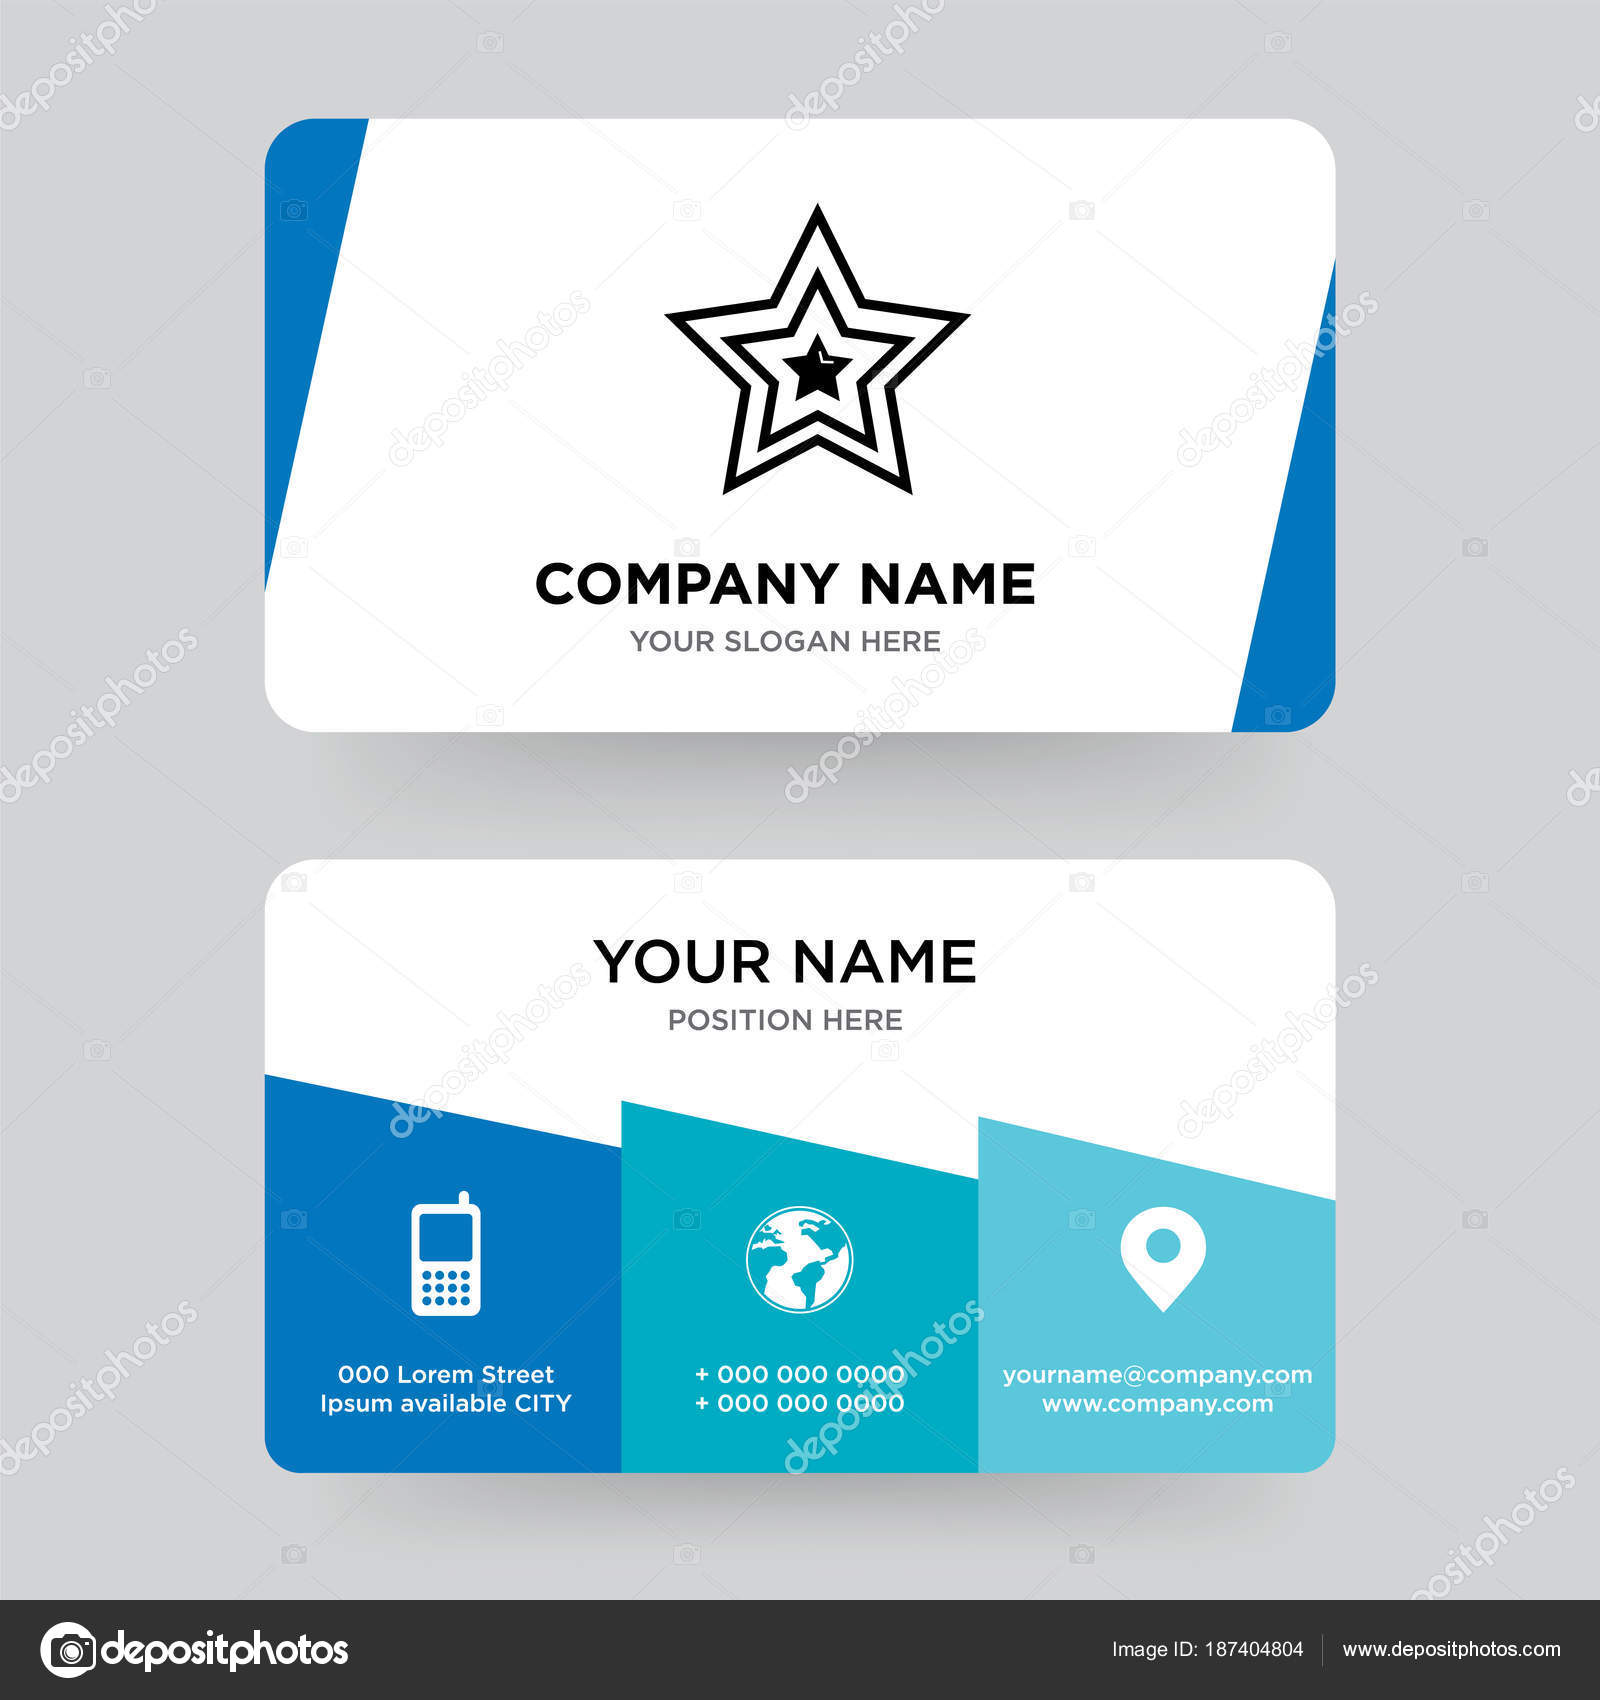 Star business card design template visiting for your company m star business card design template visiting for your company m stock vector reheart Images